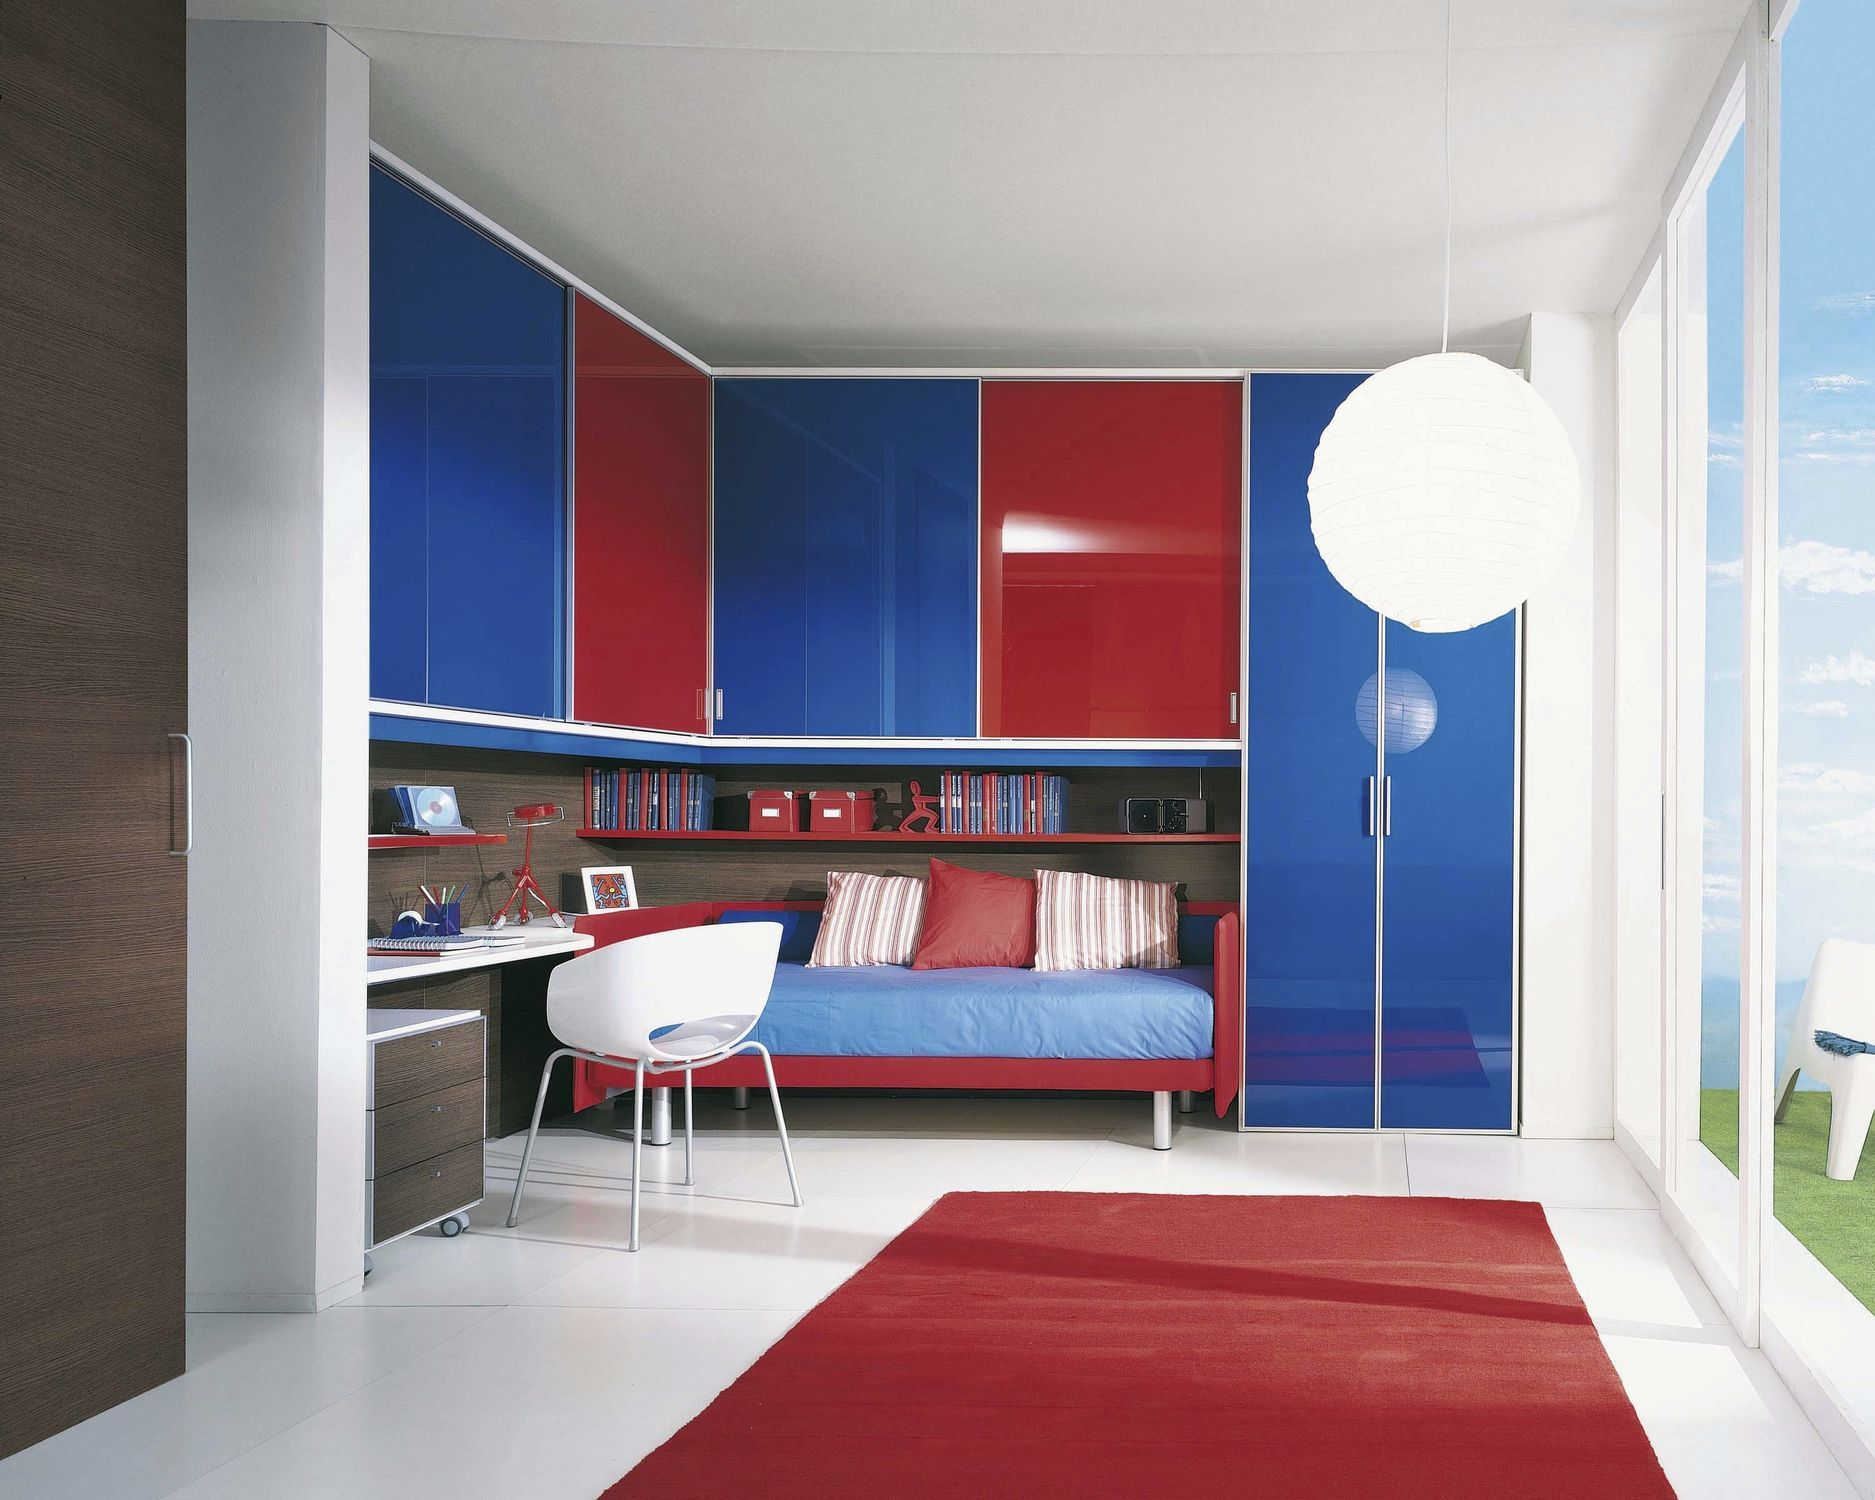 Bedroom Accessories For Men Creative Property red bedroom ideas for adults interior dark blue wall color and